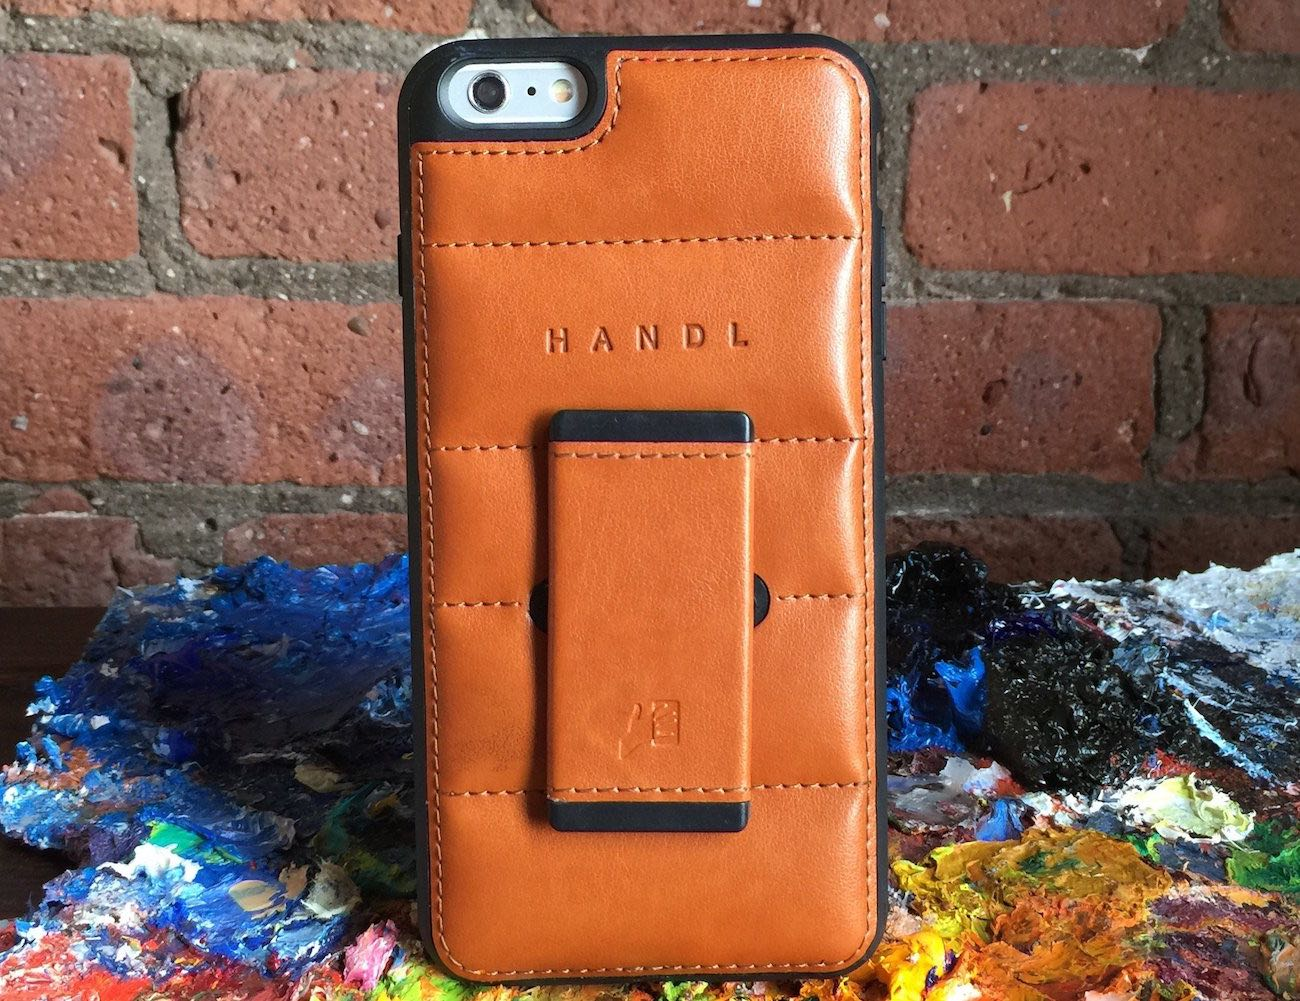 HandL Grip Case for iPhone 6 Plus